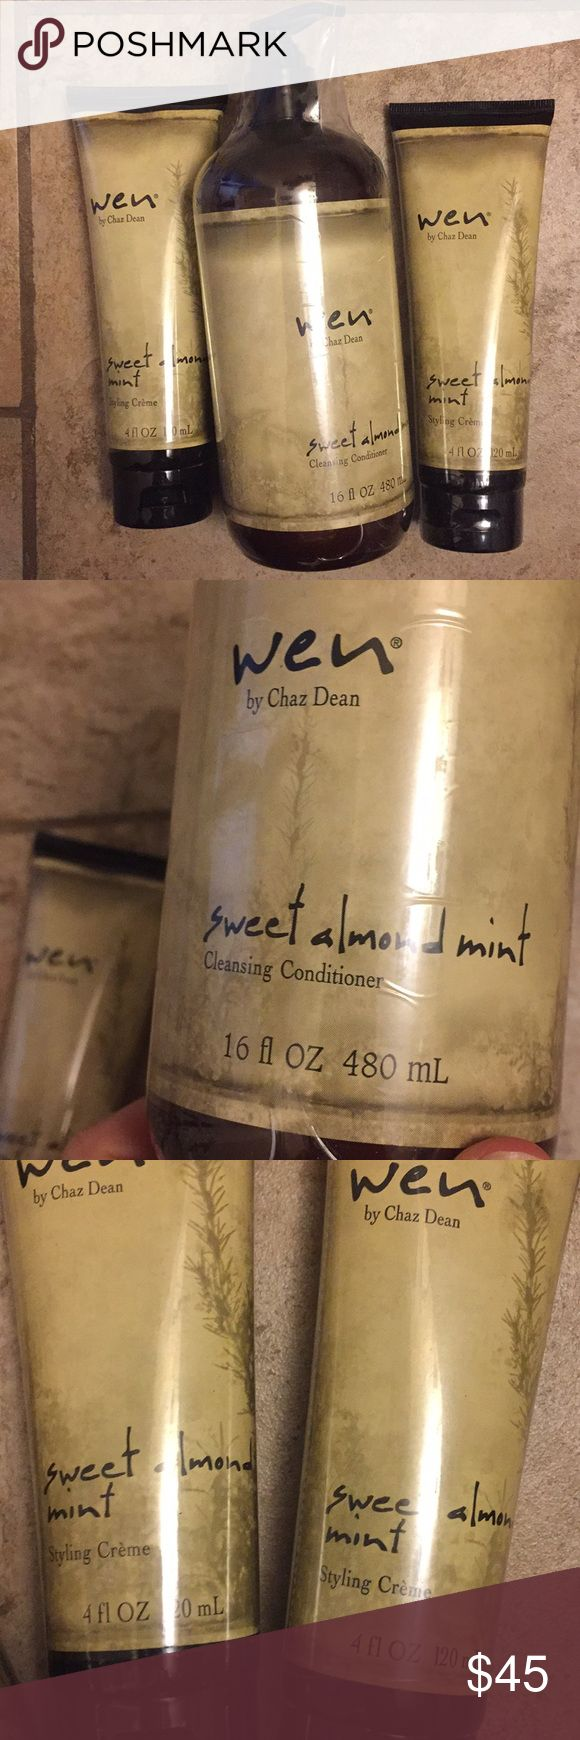 Wen hair care Wen hair care....brand new Wen by chaz dean Other